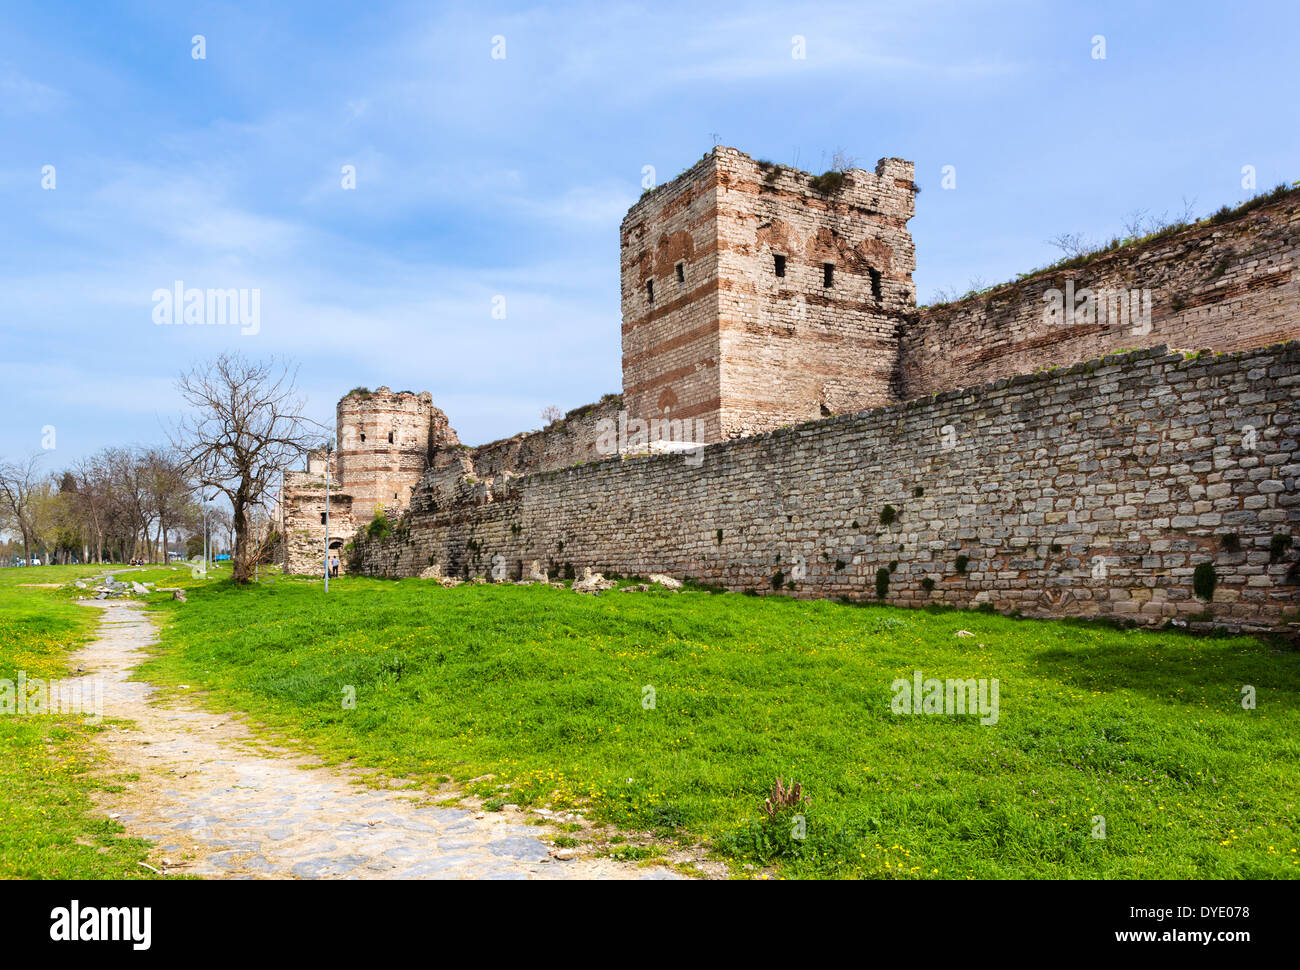 The old land walls of Theodosius II near the 1453 Panorama Museum, Topkapi district, Istanbul,Turkey - Stock Image